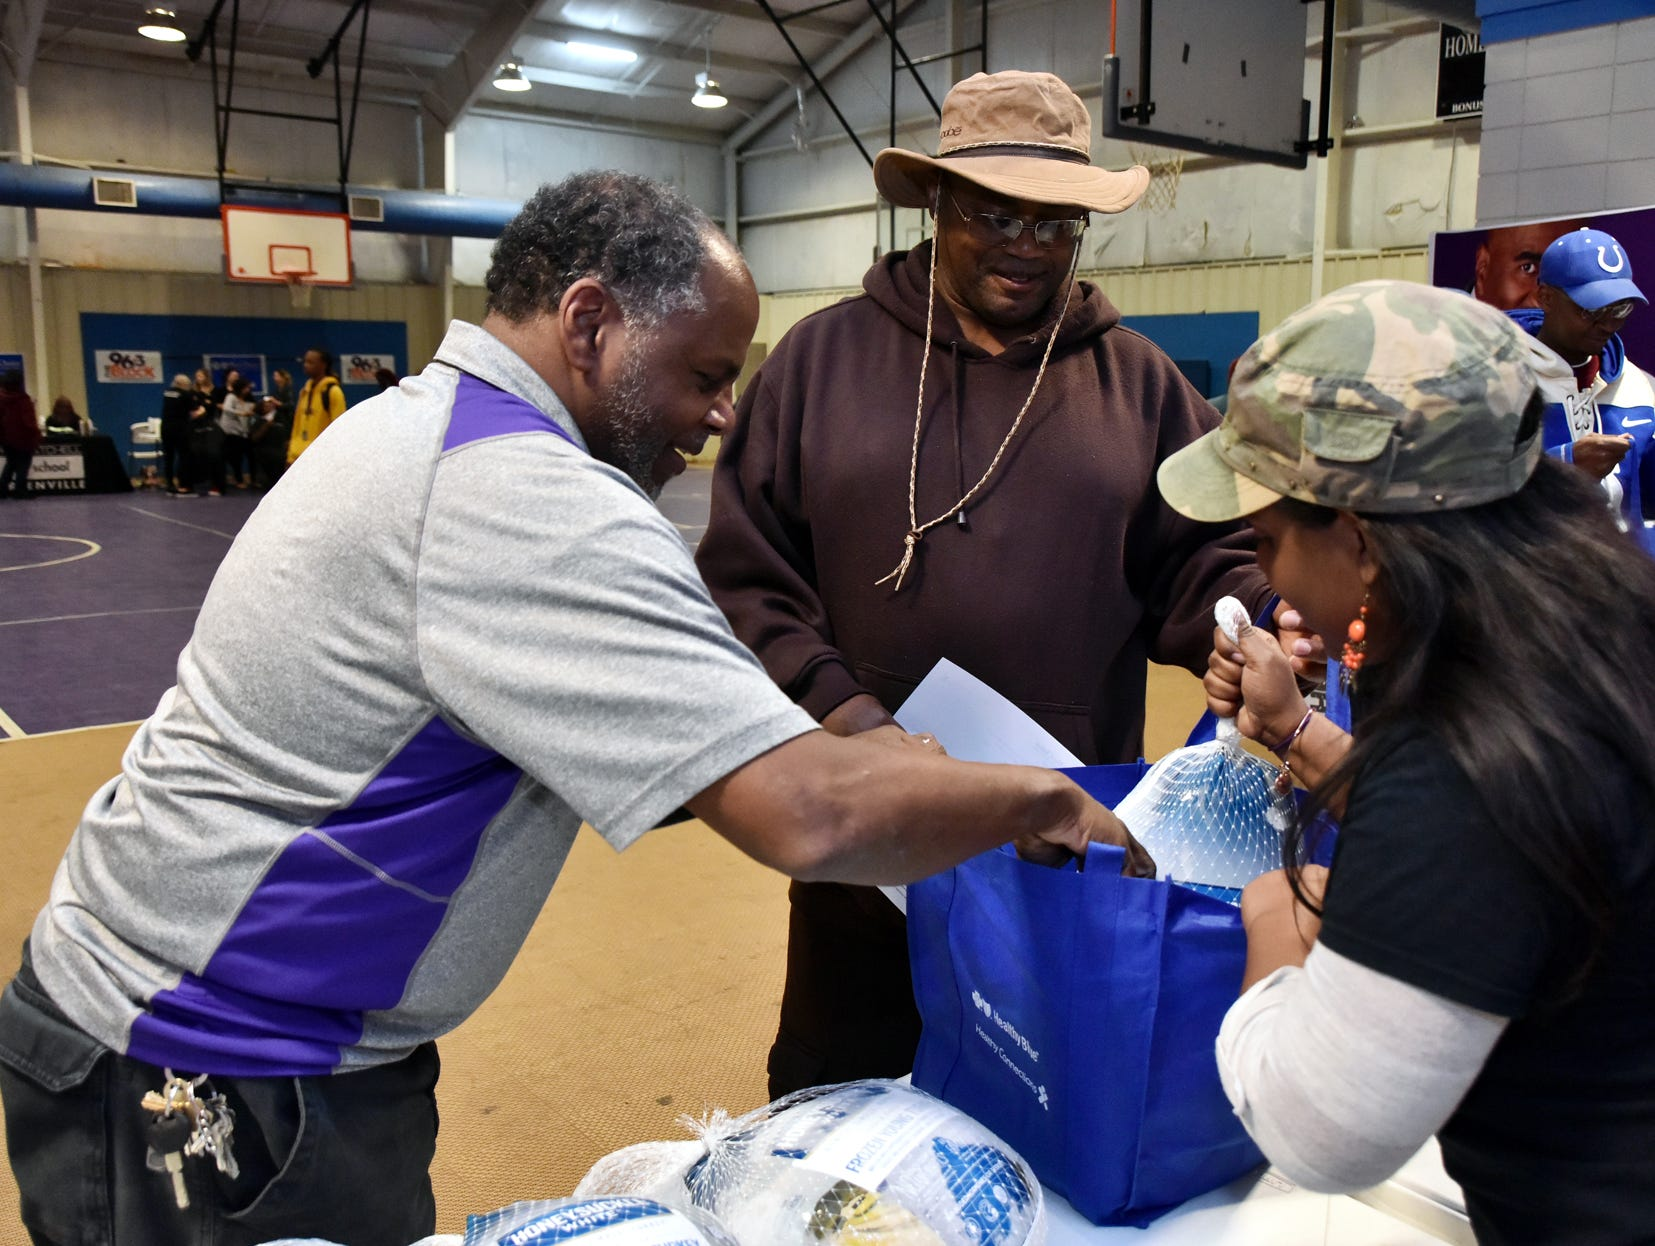 Duane Neal and Miranda Asson, on-air personalities at The Block, 96.3 in Greenville hands out turkeys during The Block presents The Steve Harvey Morning Show Turkey Give at the Freetown Community Center Tuesday evening, November 20, 2018.